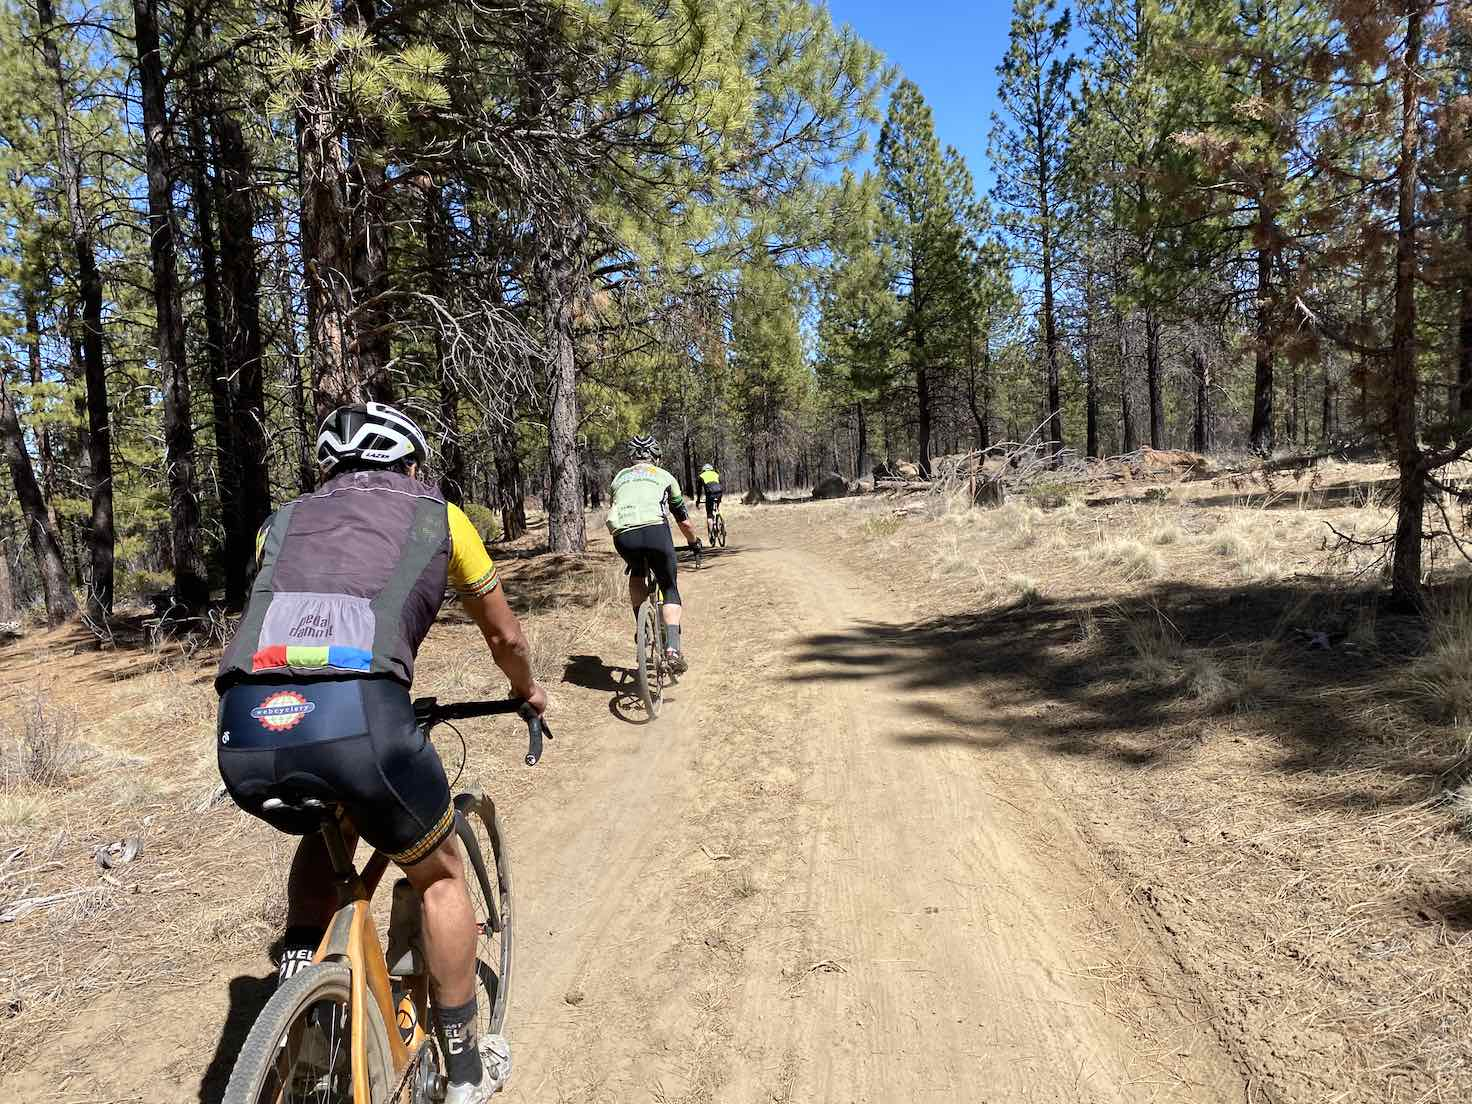 Gravel cyclists on double-track trails in Shevlin Park near Bend, OR.